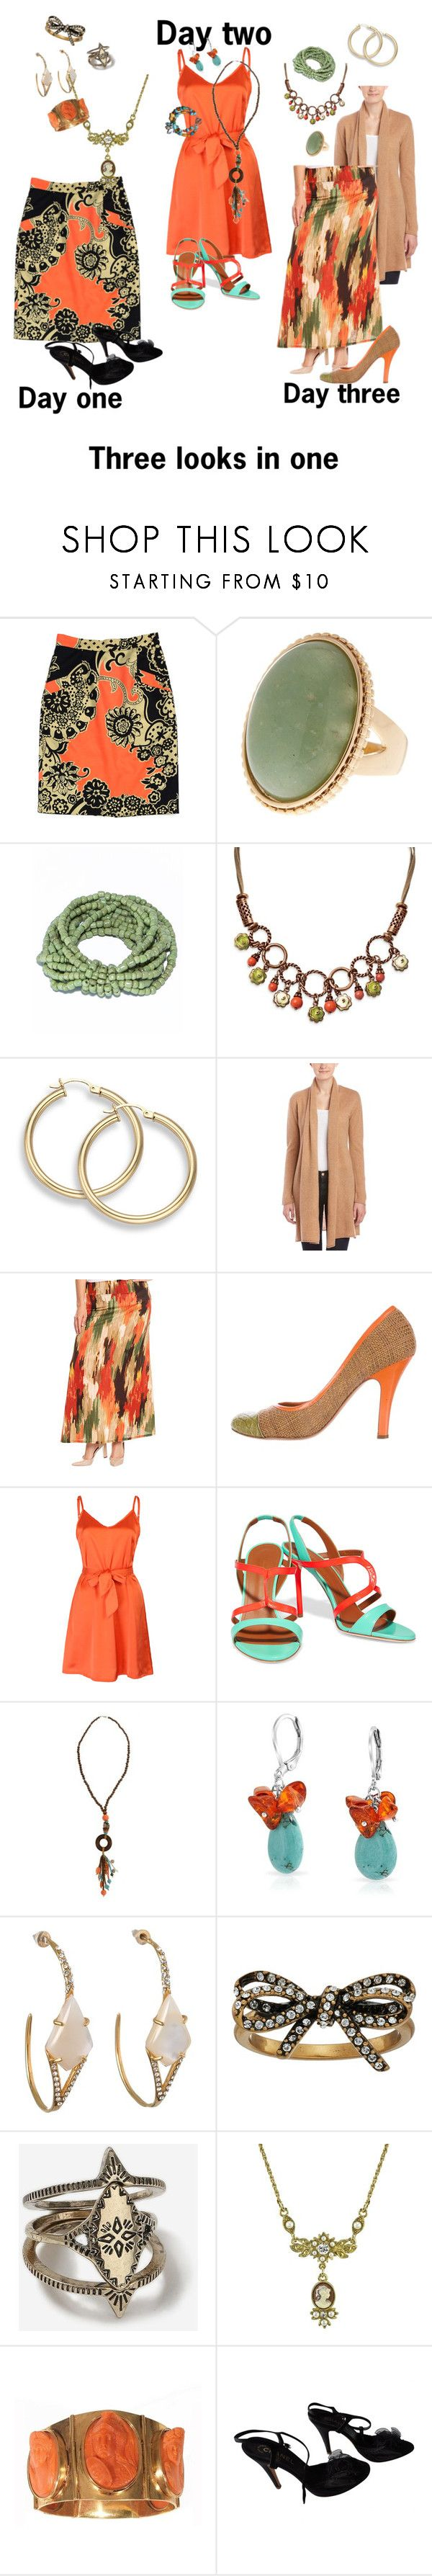 """""""Untitled #1358"""" by george-isaacs ❤ liked on Polyvore featuring TIBI, 1928, Caroline Grace, KatyaUSA, Prada, WithChic, Malone Souliers, Erica Lyons, Bling Jewelry and De Buman"""